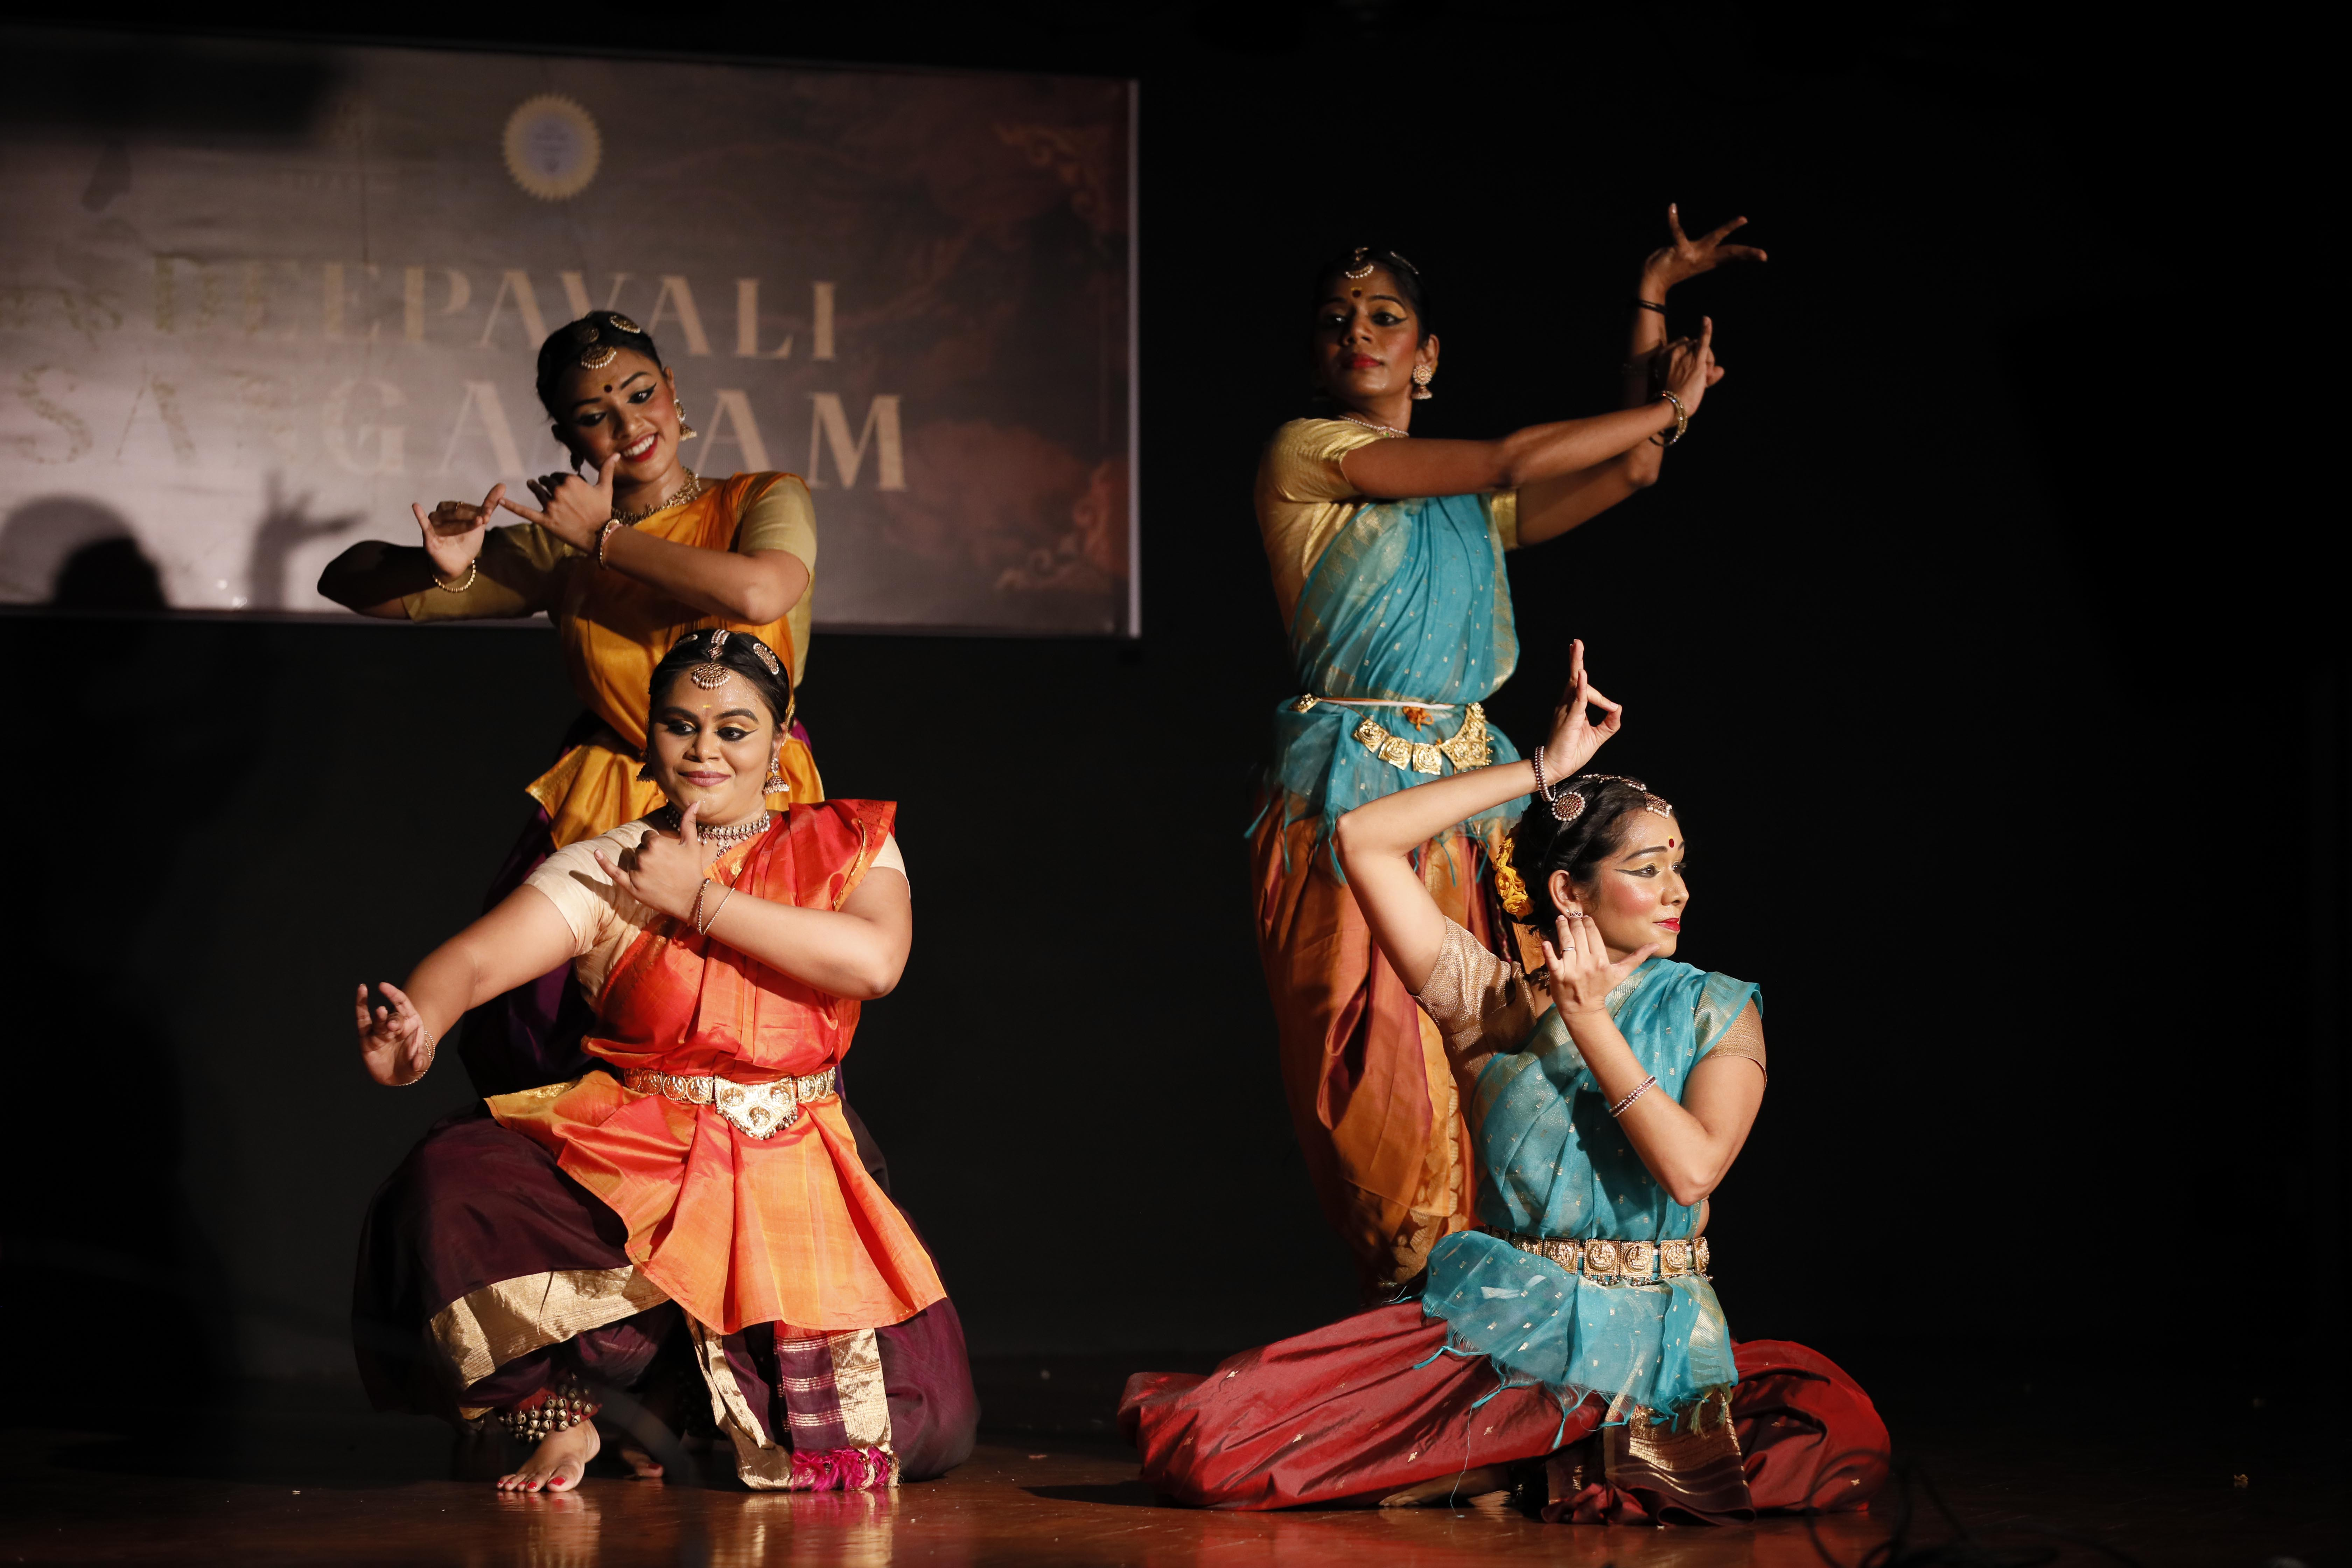 71-year-old Singapore Indian Fine Arts Society (SIFAS) brought together 11 ethnic community groups for the first time on an online platform to present Deepavali Sangamam. Photo: Connected to India